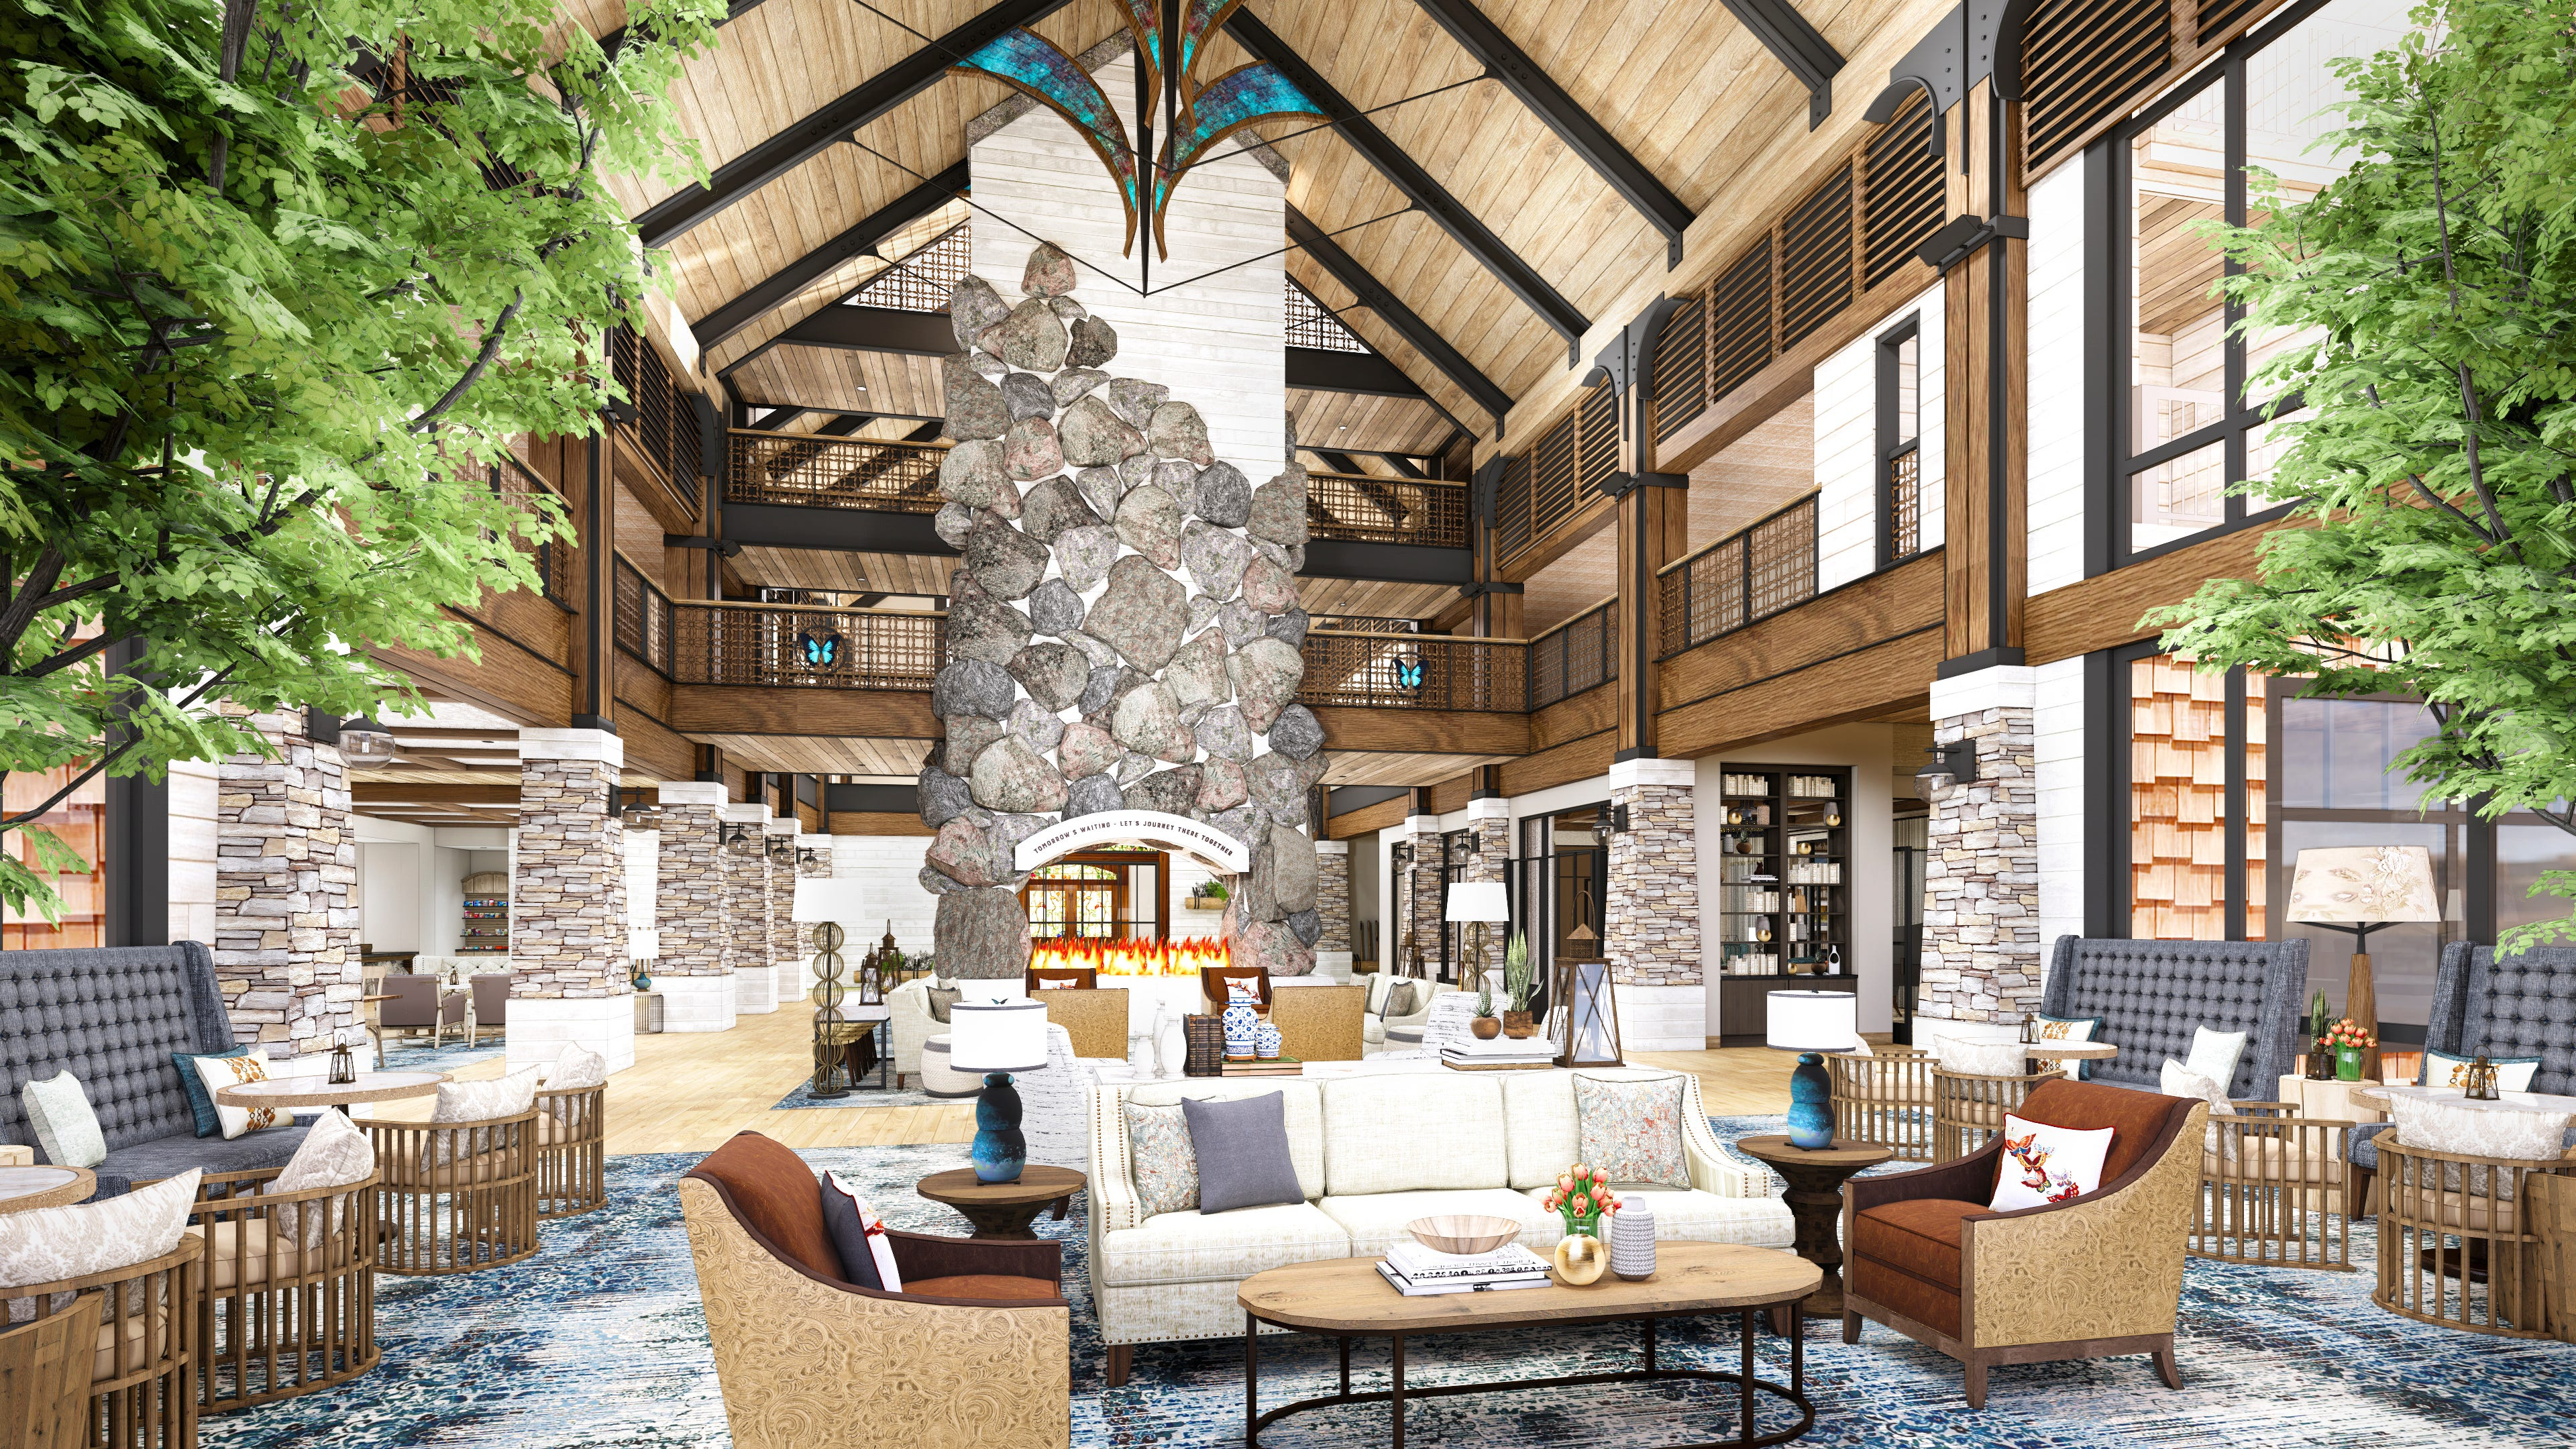 Dollywood exclusive: Dolly Parton bringing new HeartSong Lodge to Pigeon Forge in 2023